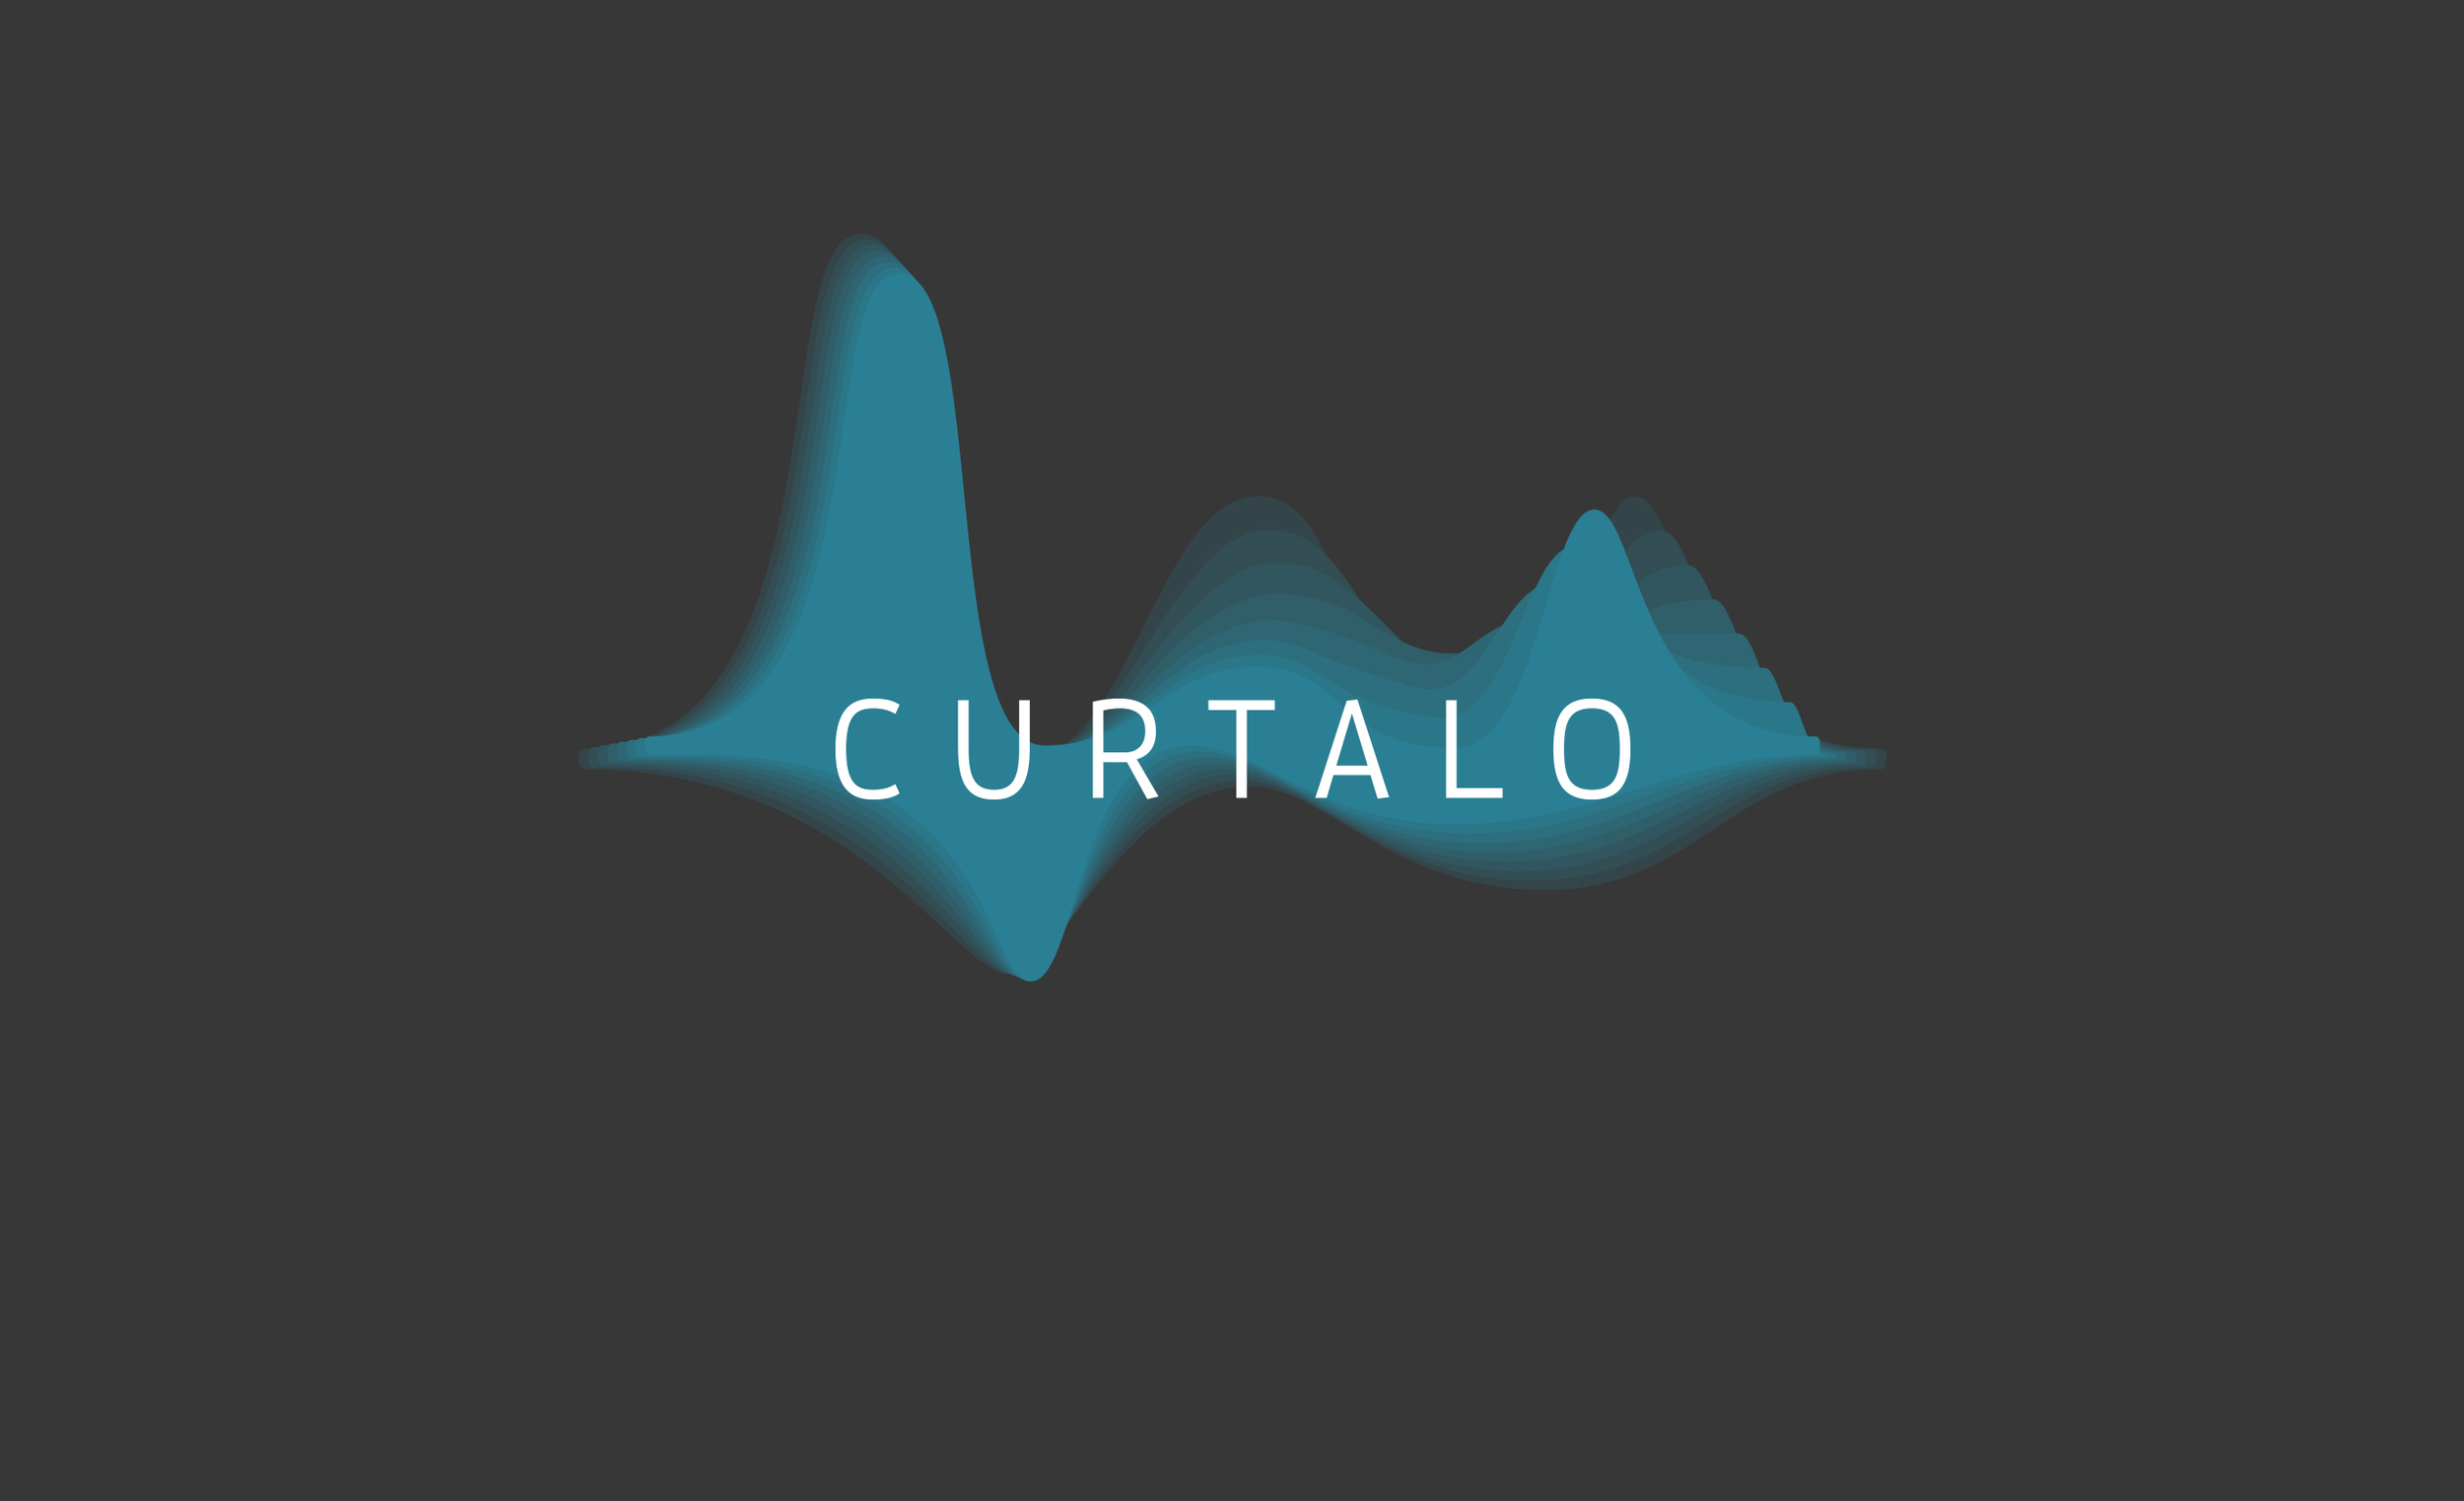 curtalo-animation_01.jpg